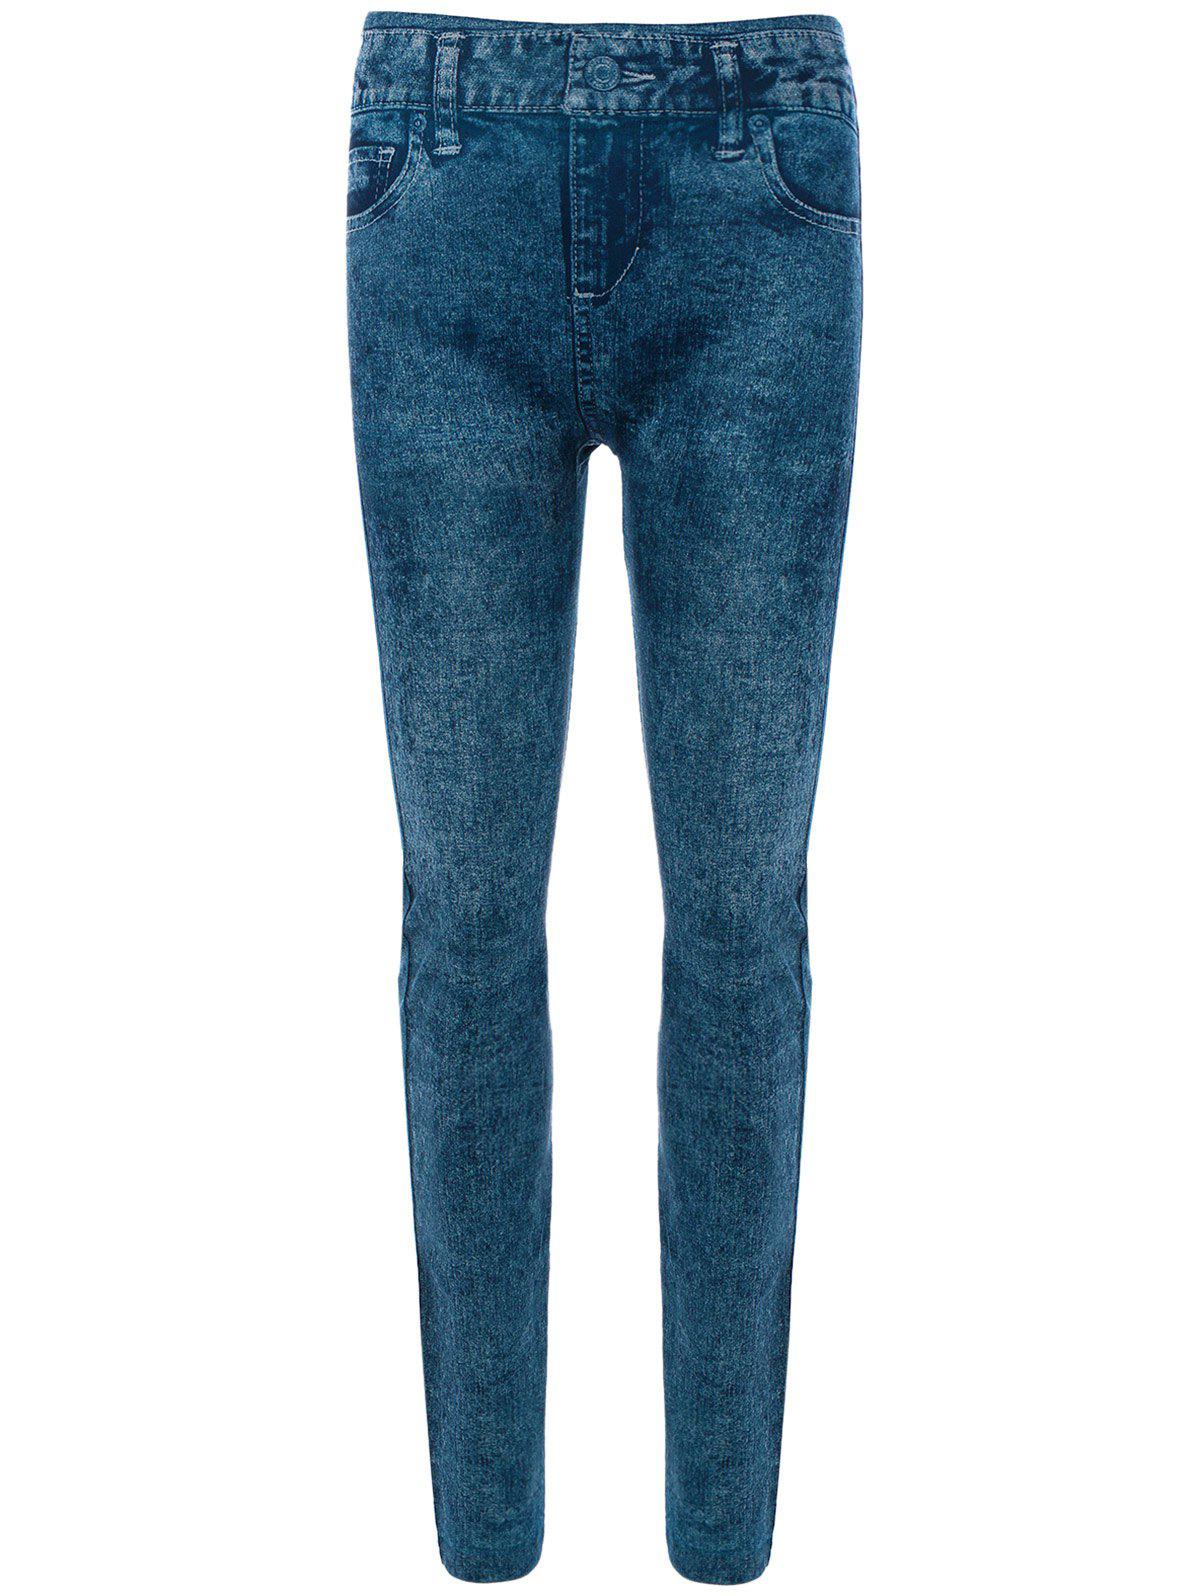 Sale Skinny Jeggings Faux Jean Leggings